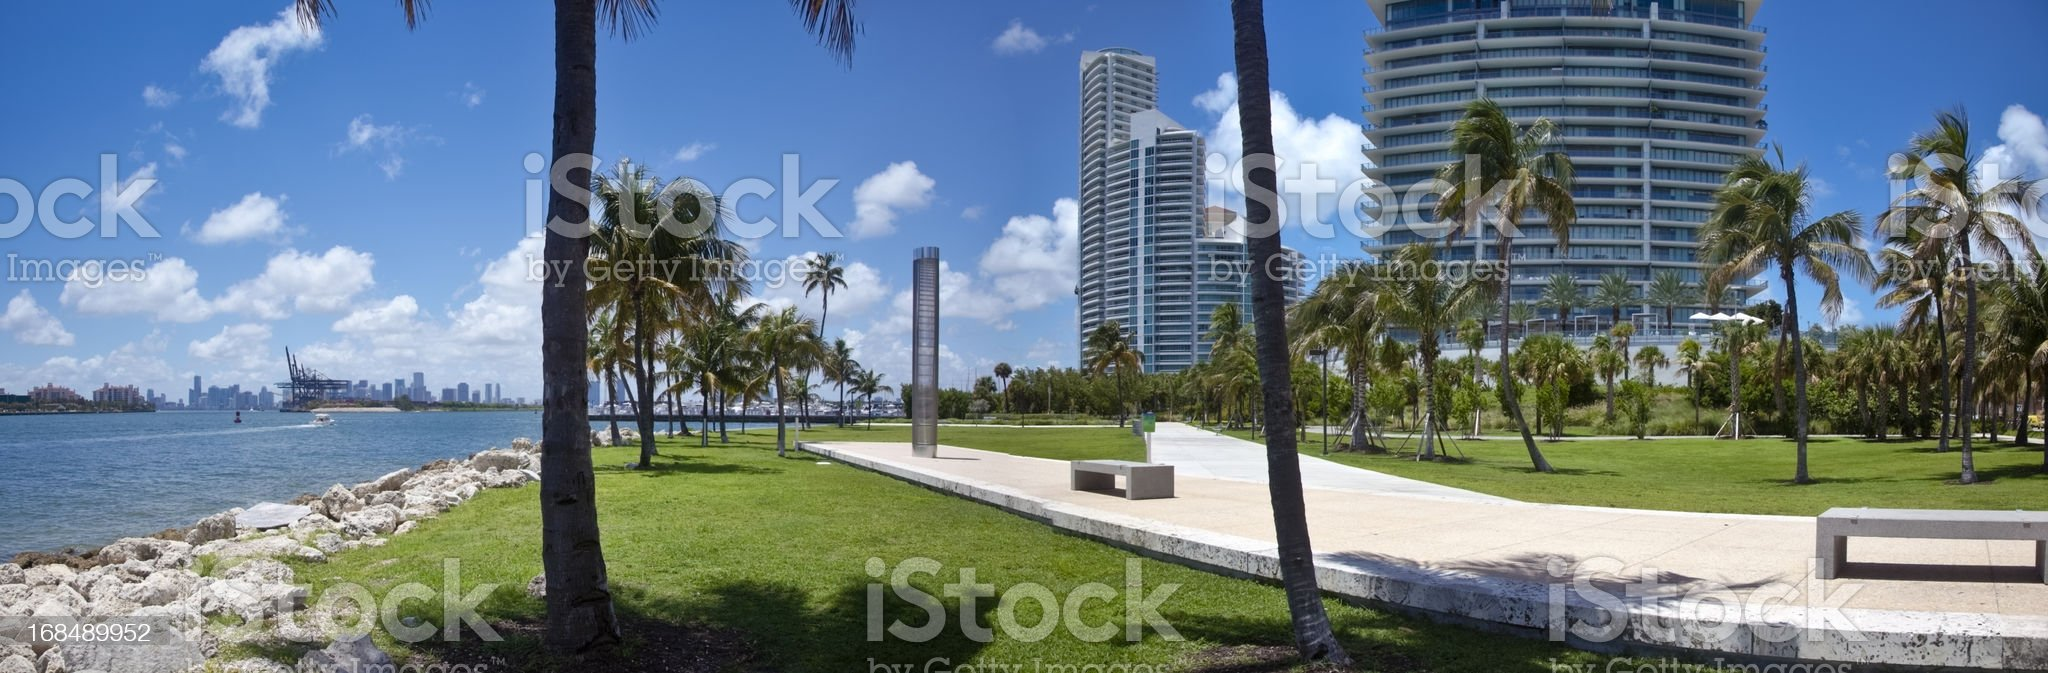 South Beach Park, Miami - Path, Benches, Palms, and Water royalty-free stock photo